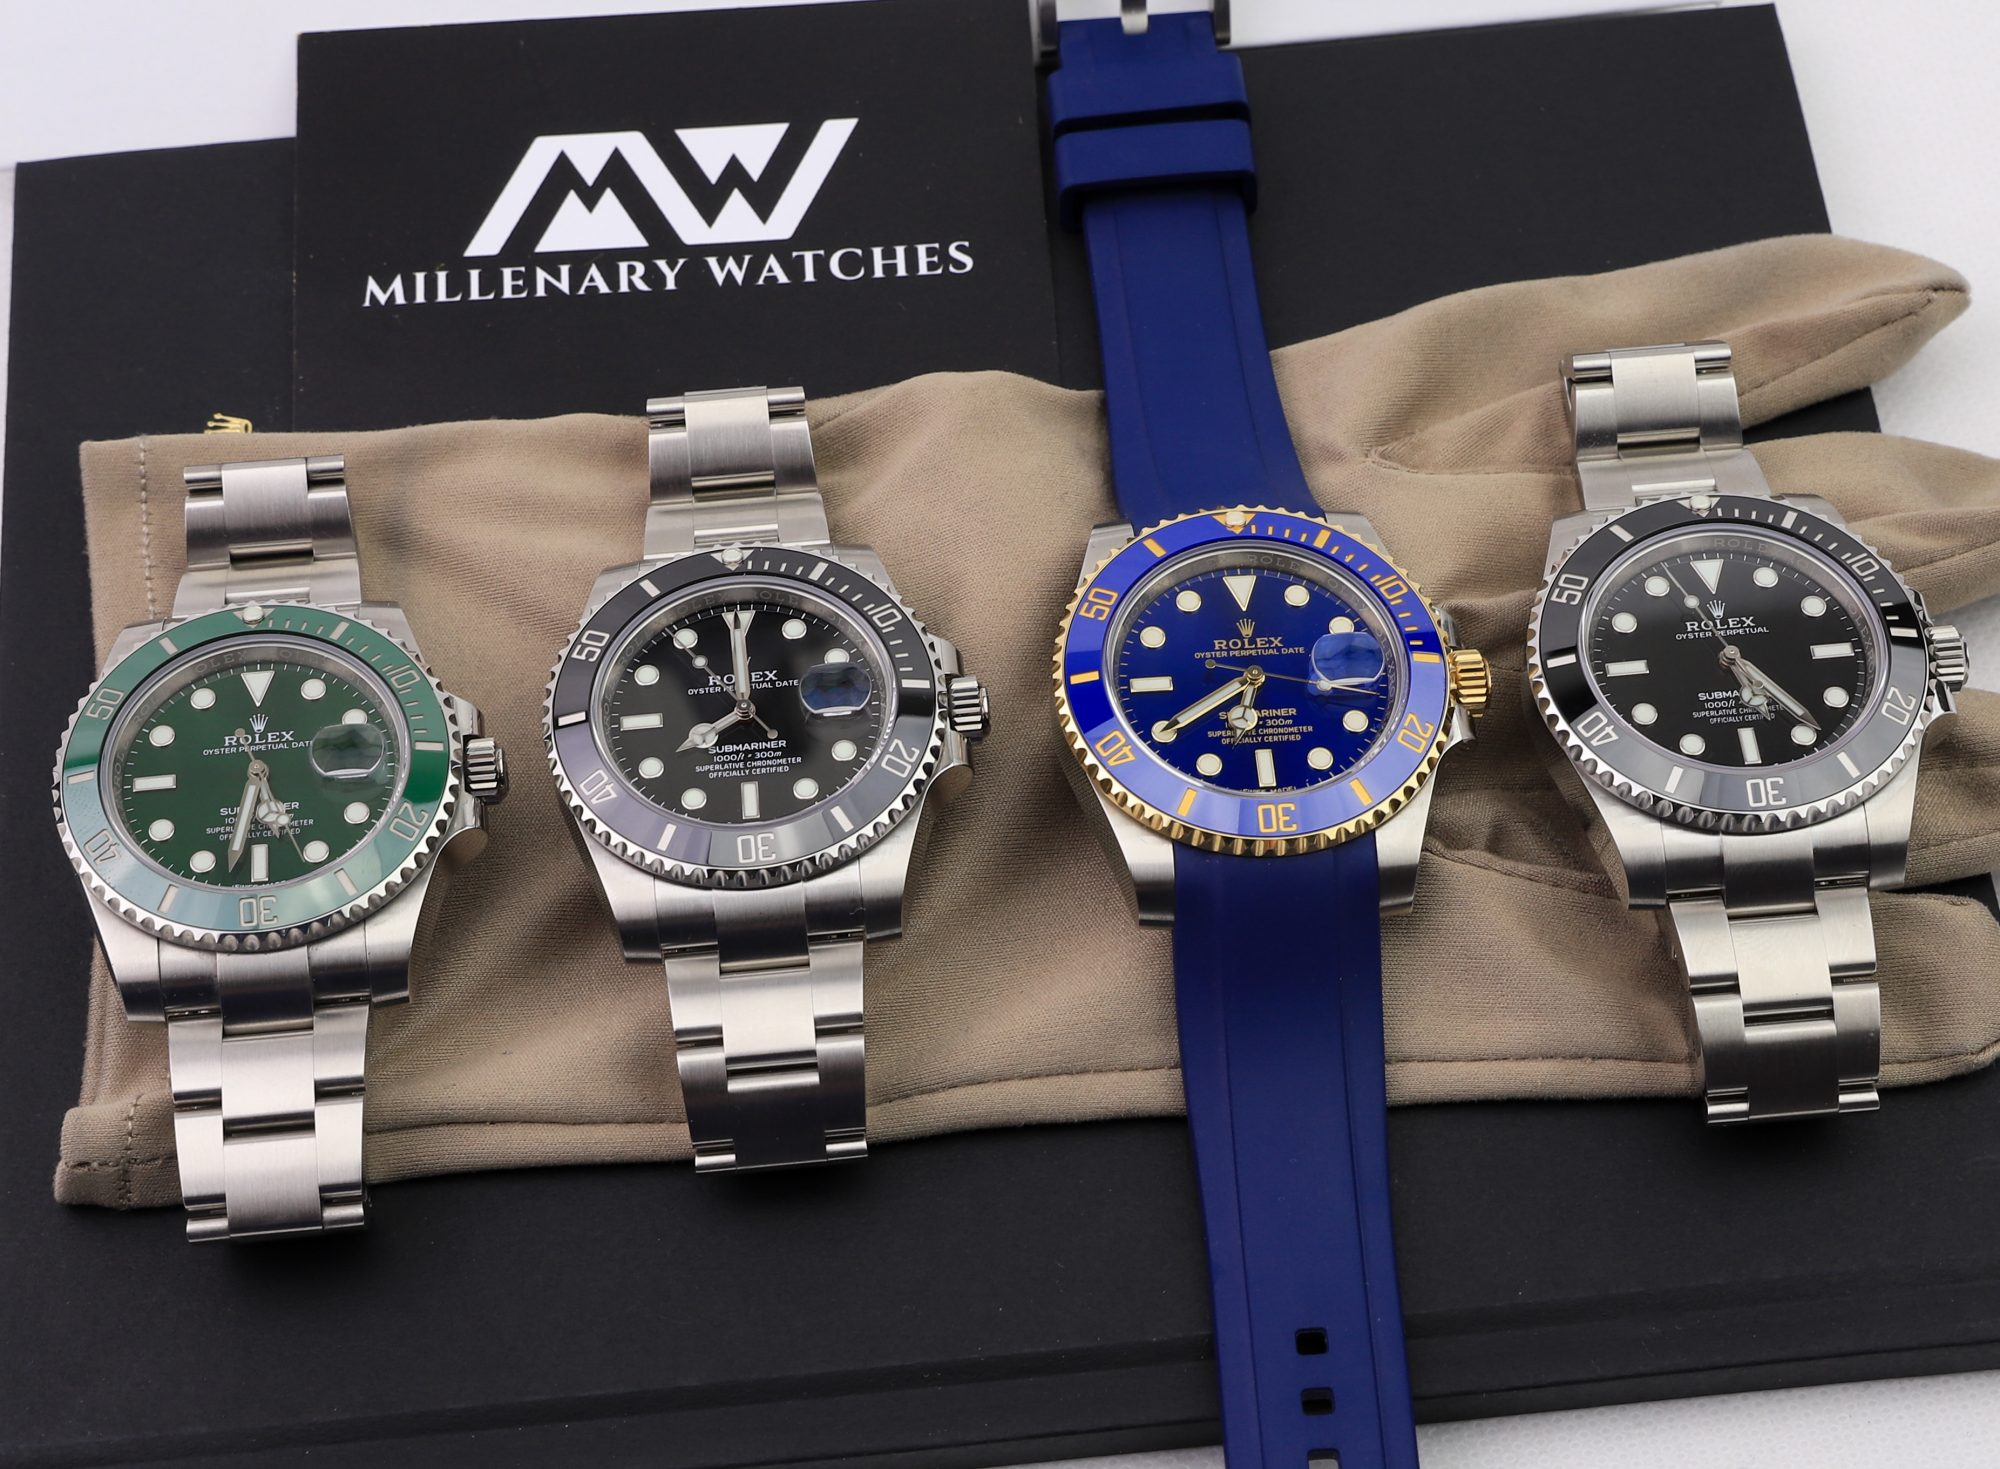 Rolex Submariner Watches Millenary Watches